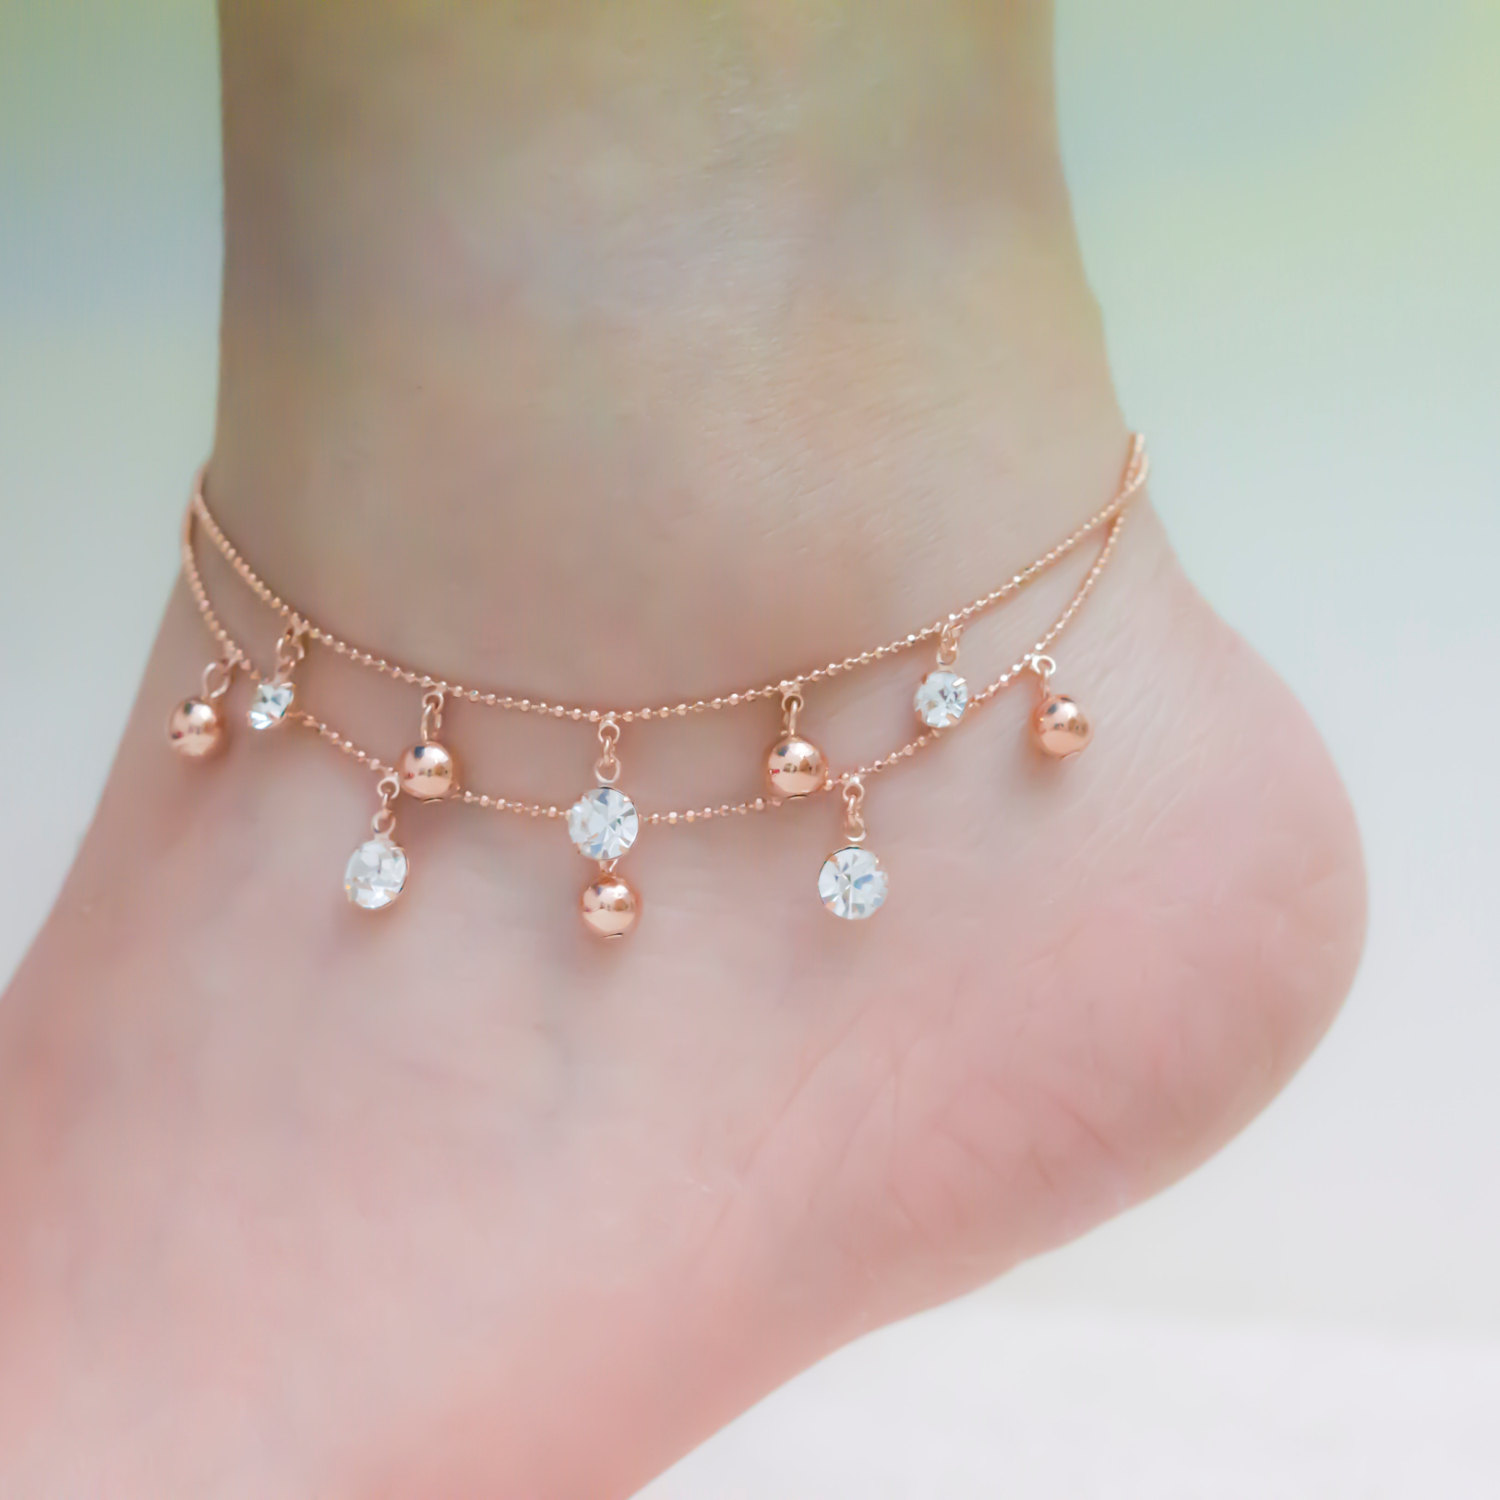 beach leather best pinterest s anklets summer anklet images mens on men ankle bracelets bracelet for jewelry